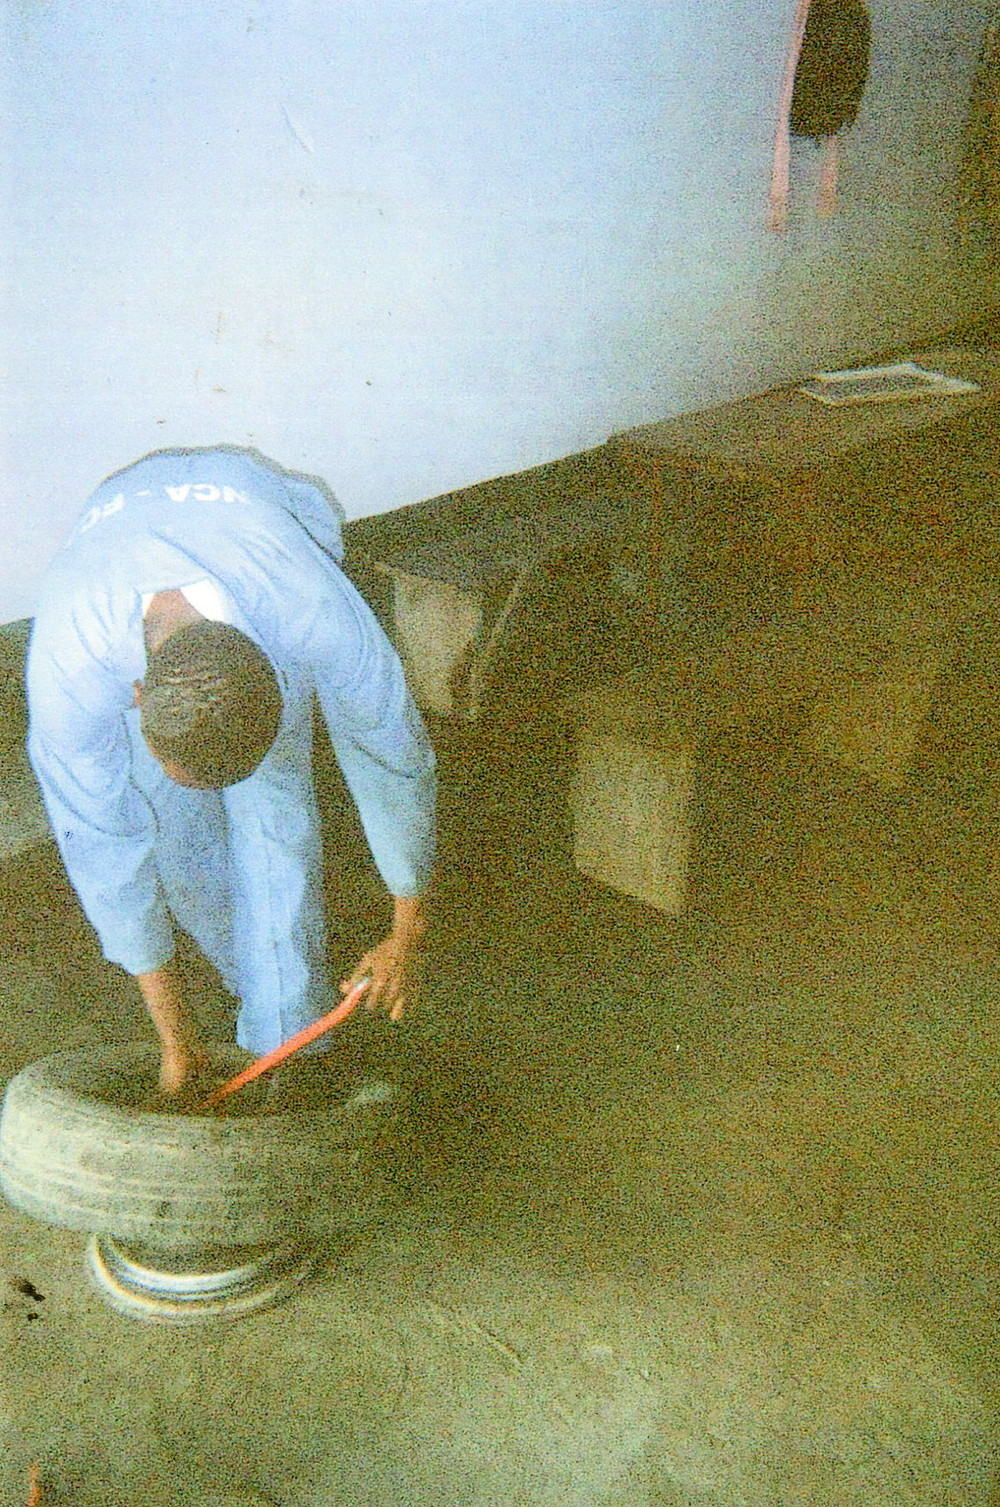 I am repairing a car tire.